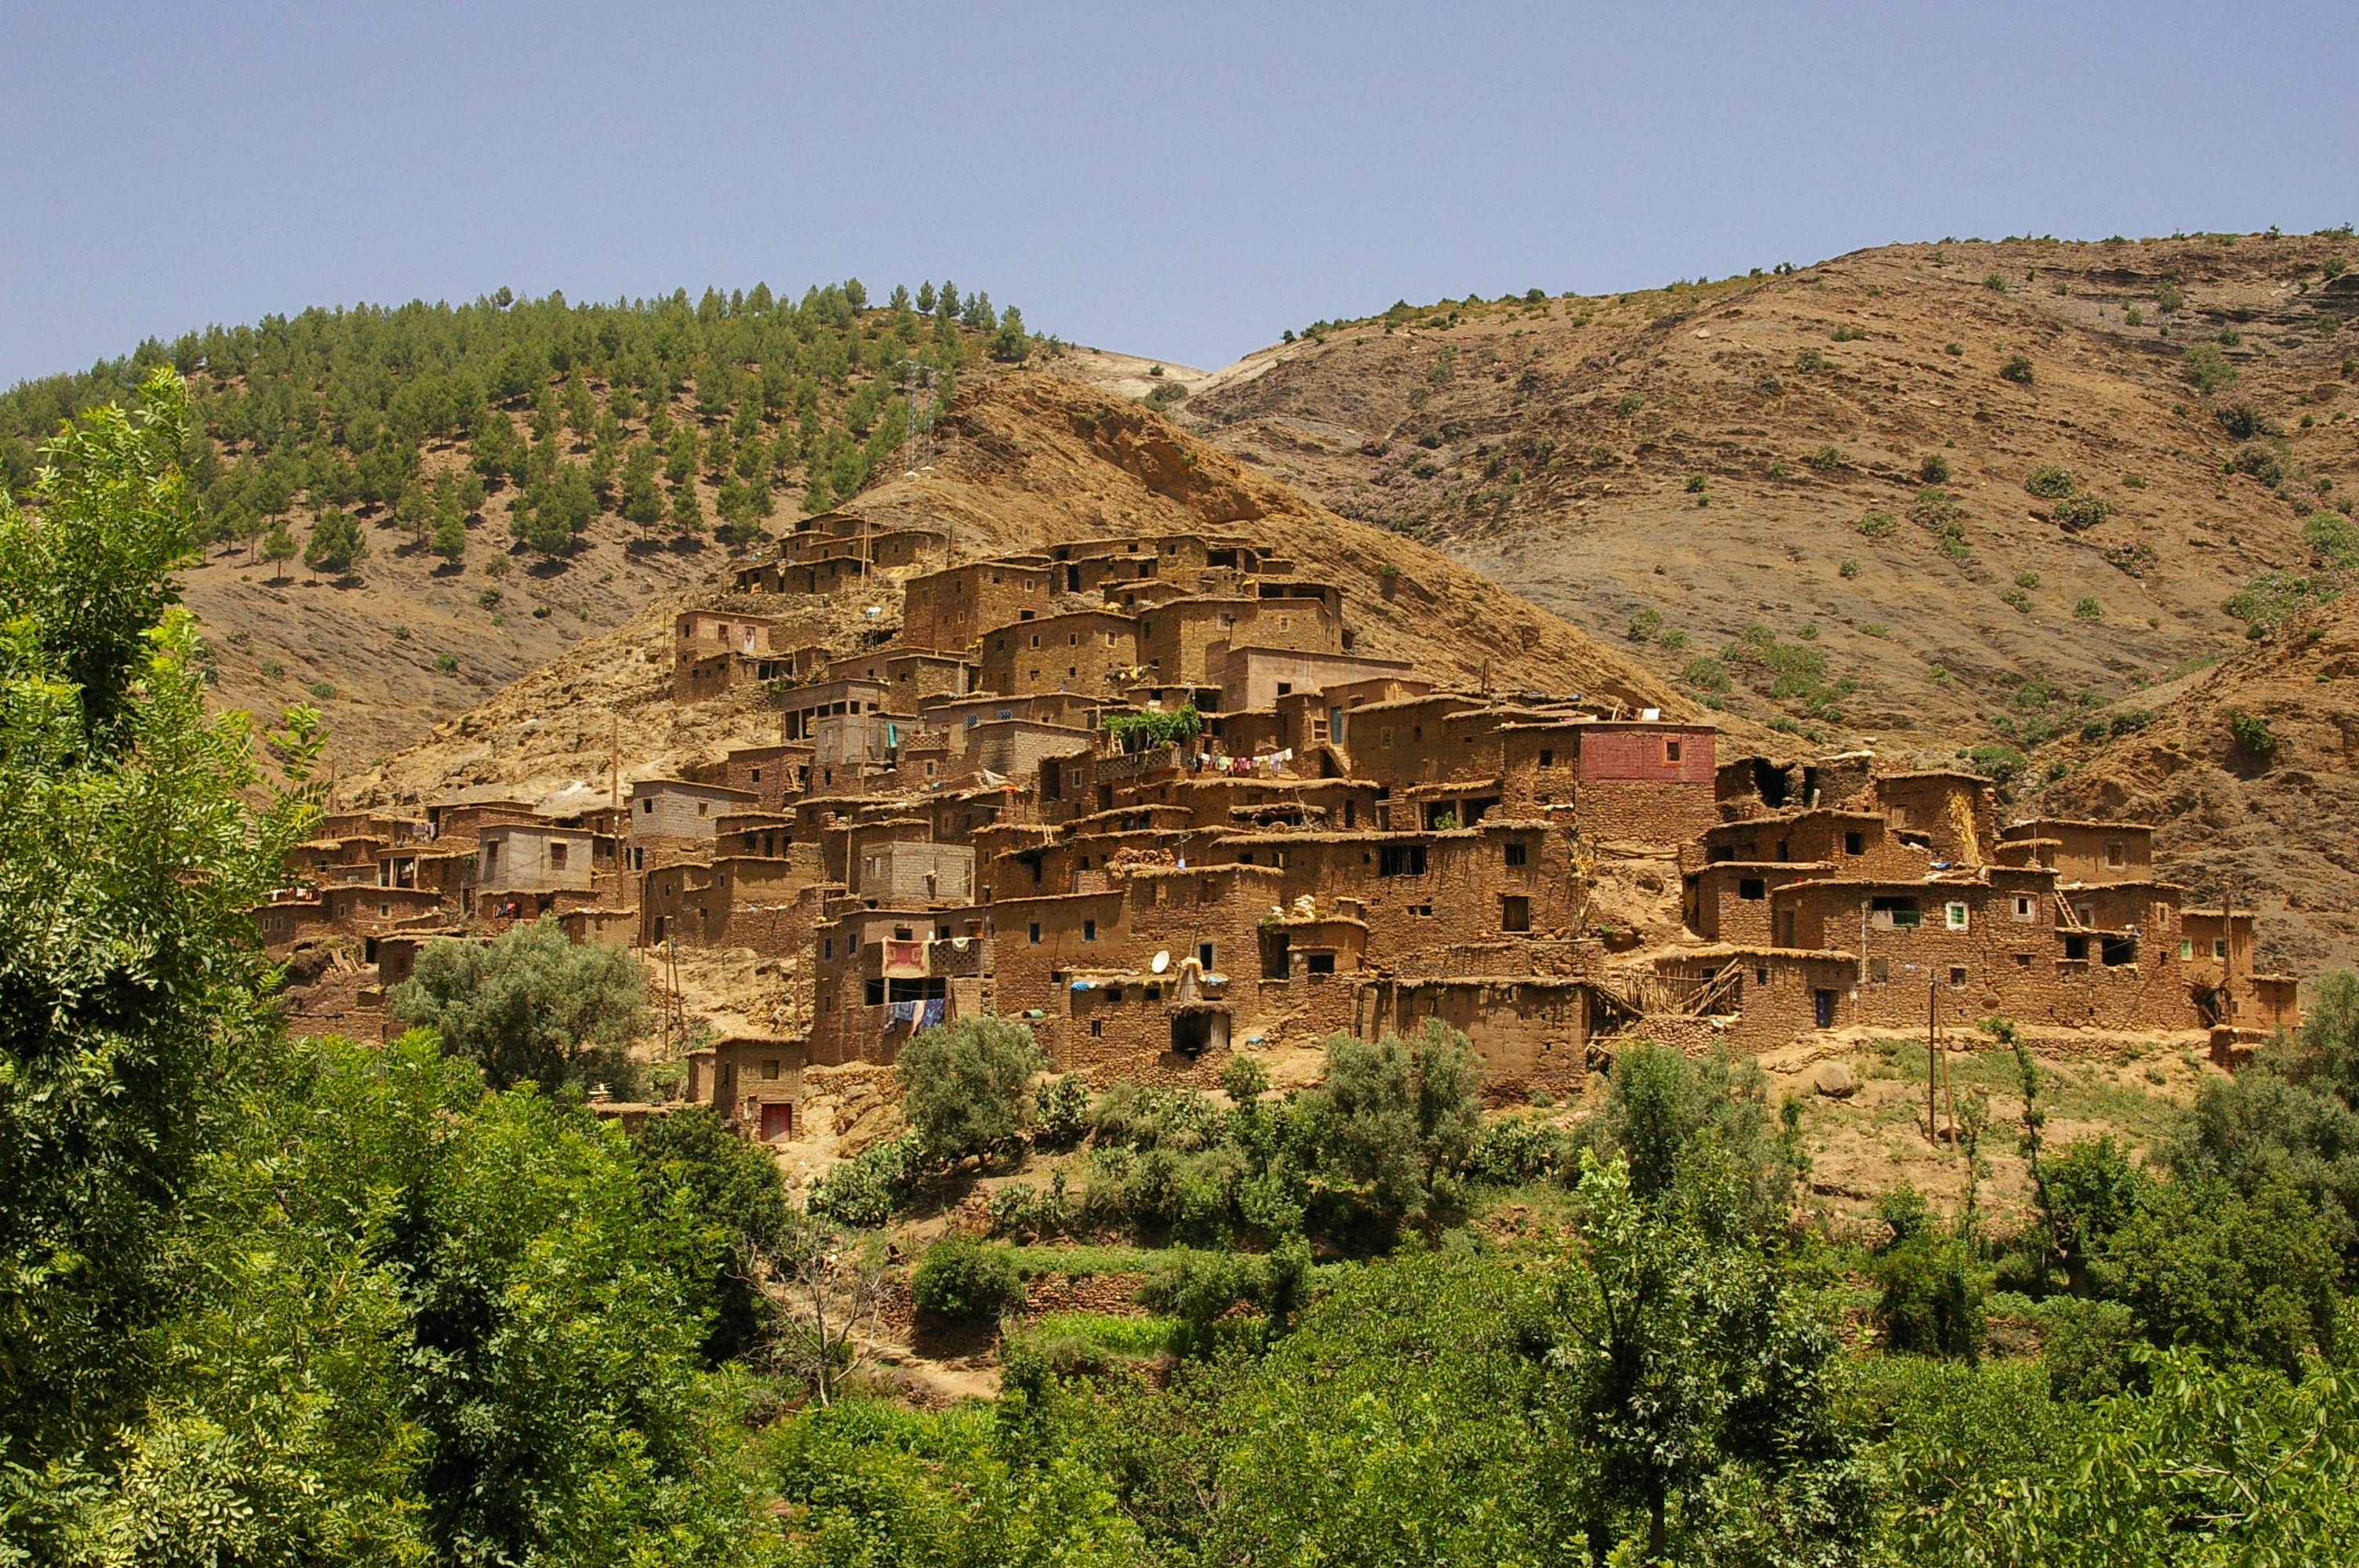 File:Ourika berbere village.jpg - Wikimedia Commons